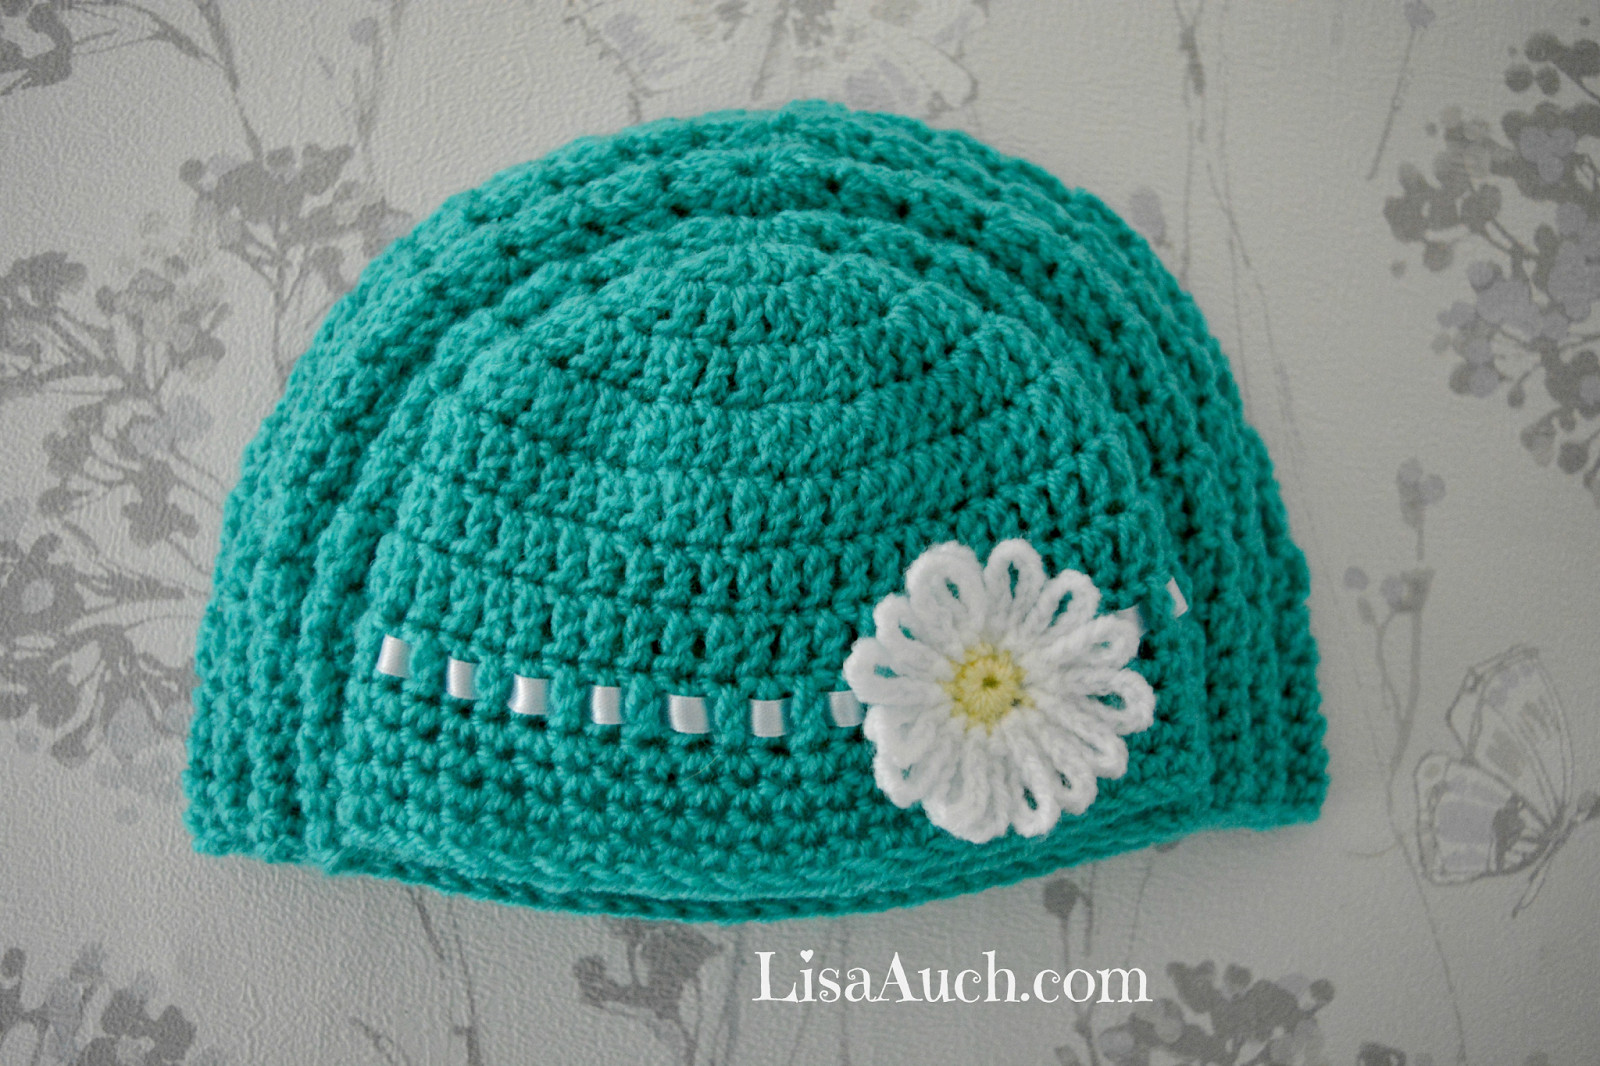 Crochet Baby Beanie Luxury Free Crochet Baby Beanie Hat Pattern 6 12 Months Of Beautiful 46 Pictures Crochet Baby Beanie